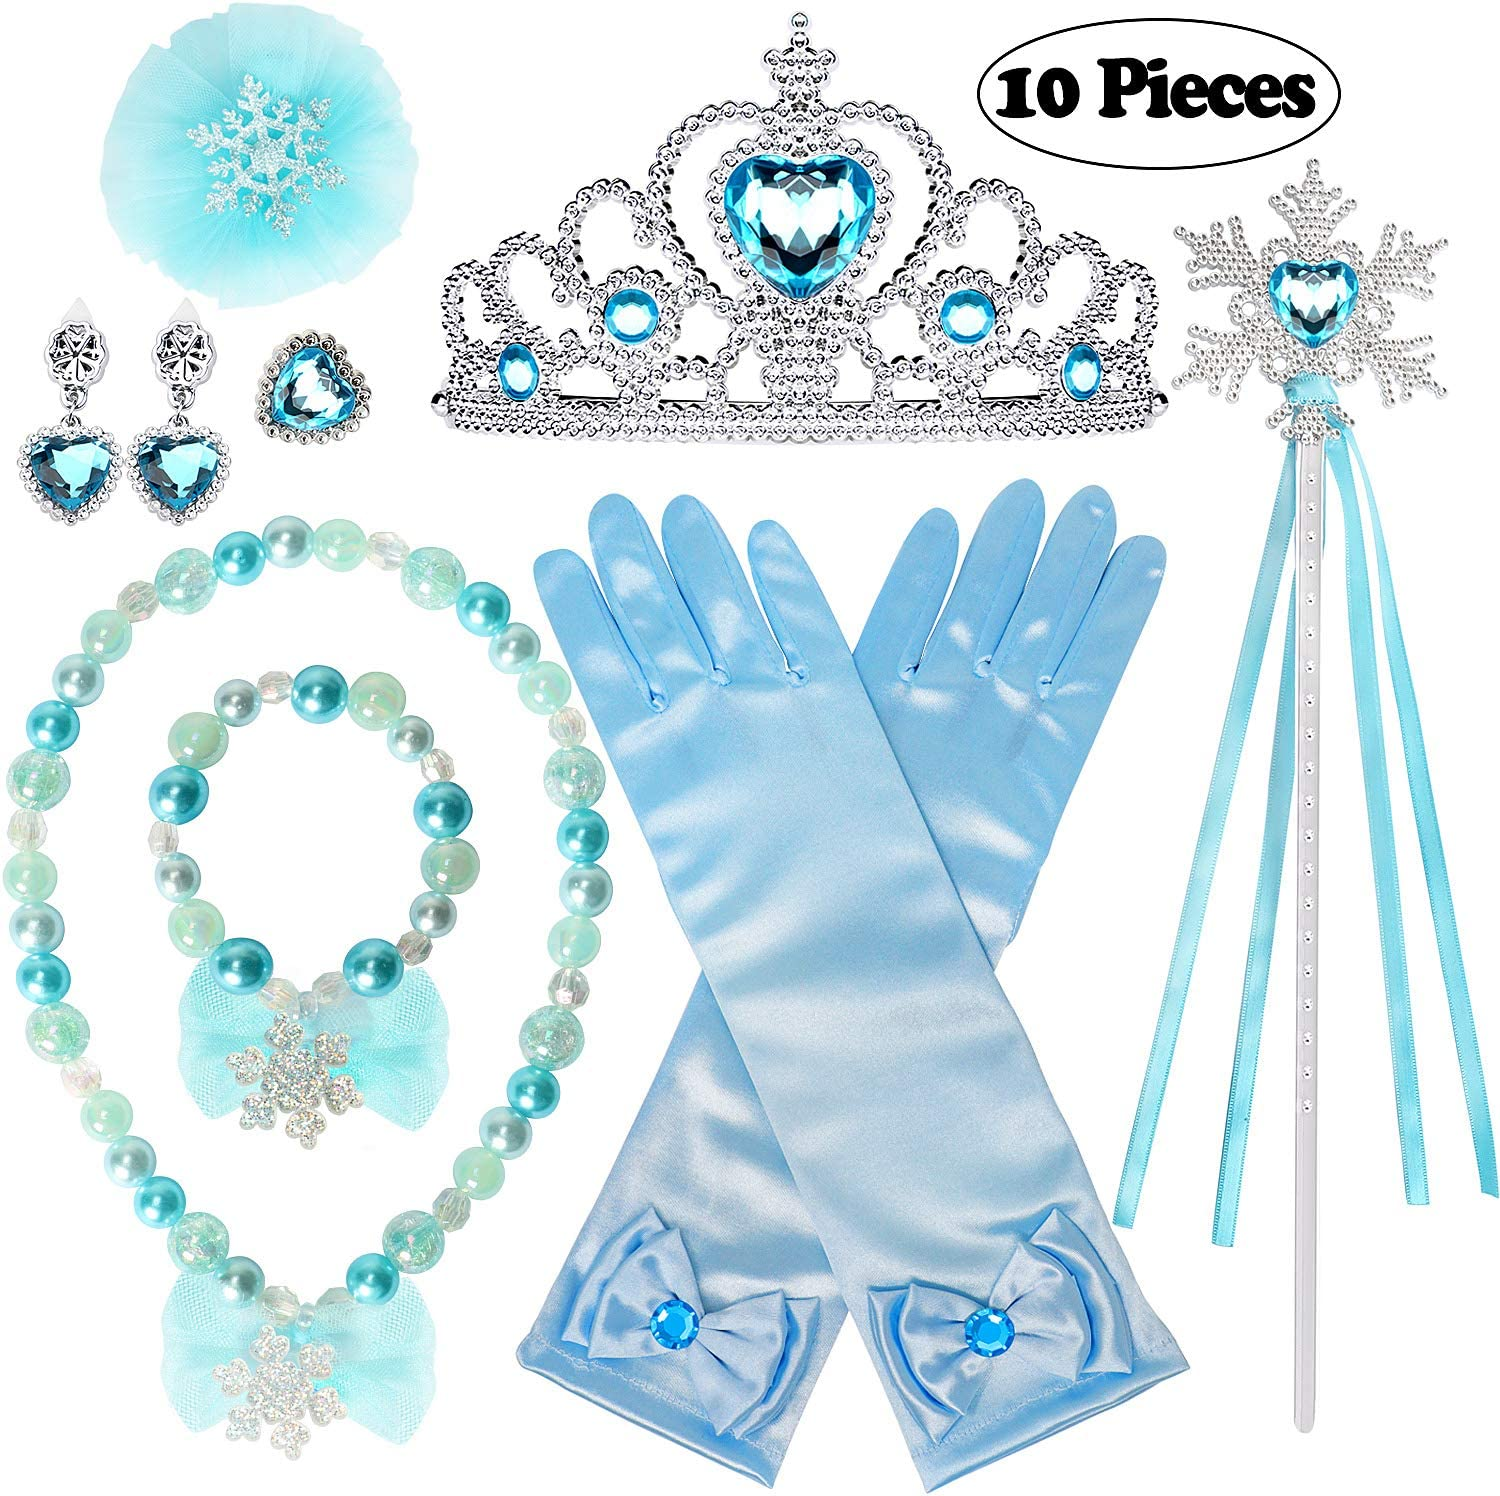 Amor 8Pcs Princess Dress Up Cosplay Costume Party Accessories with Crown Wand Gloves Necklace Earrings /& Ring